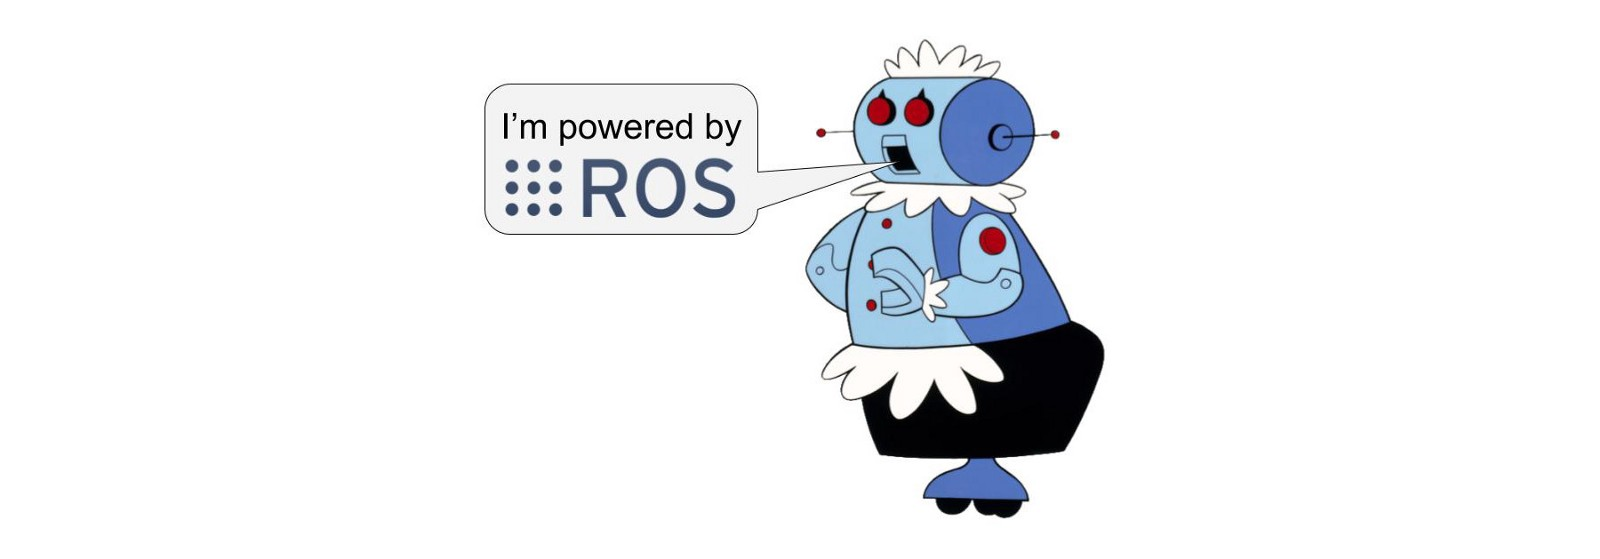 2 Exercises To Understand Robot Operating System Without Writing Any